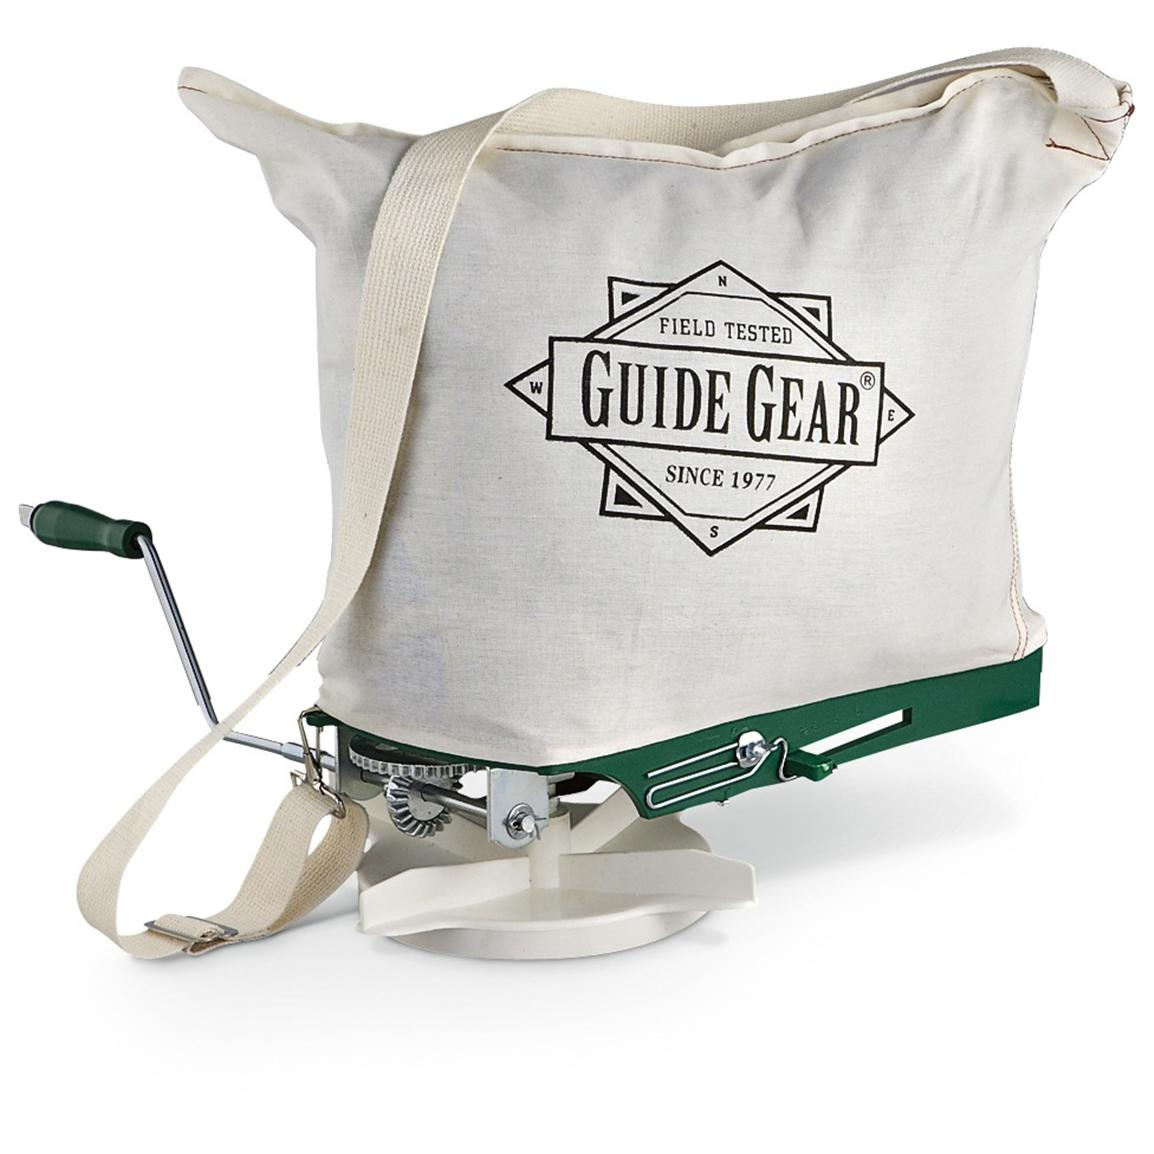 Guide Gear® 20-lb. Hand-cranked Seeder / Spreader